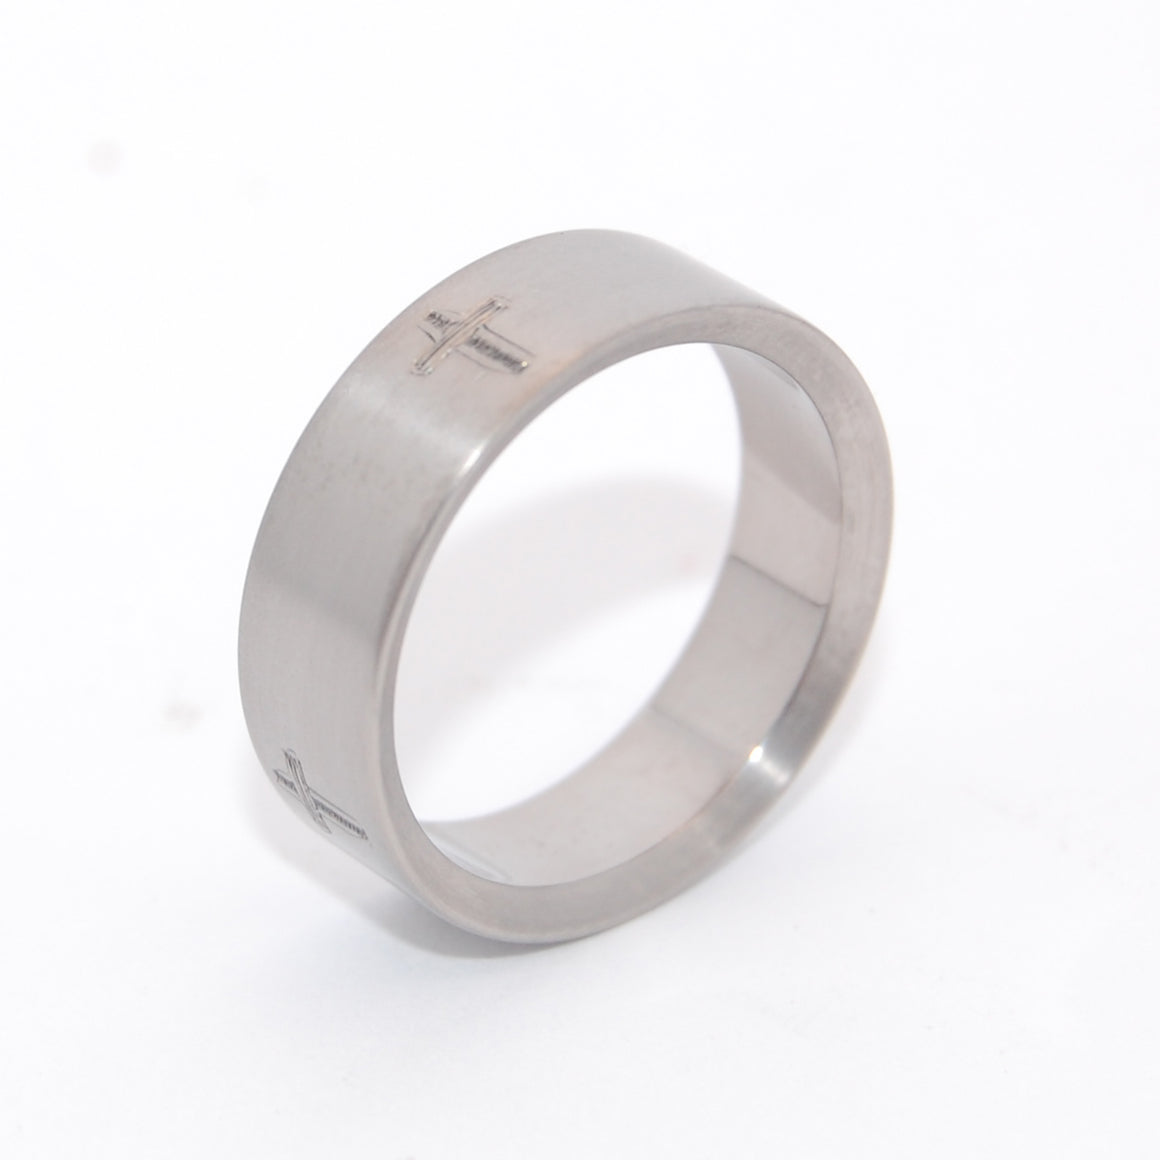 The Way, The Truth, and The Life | Engraved Titanium Wedding Ring